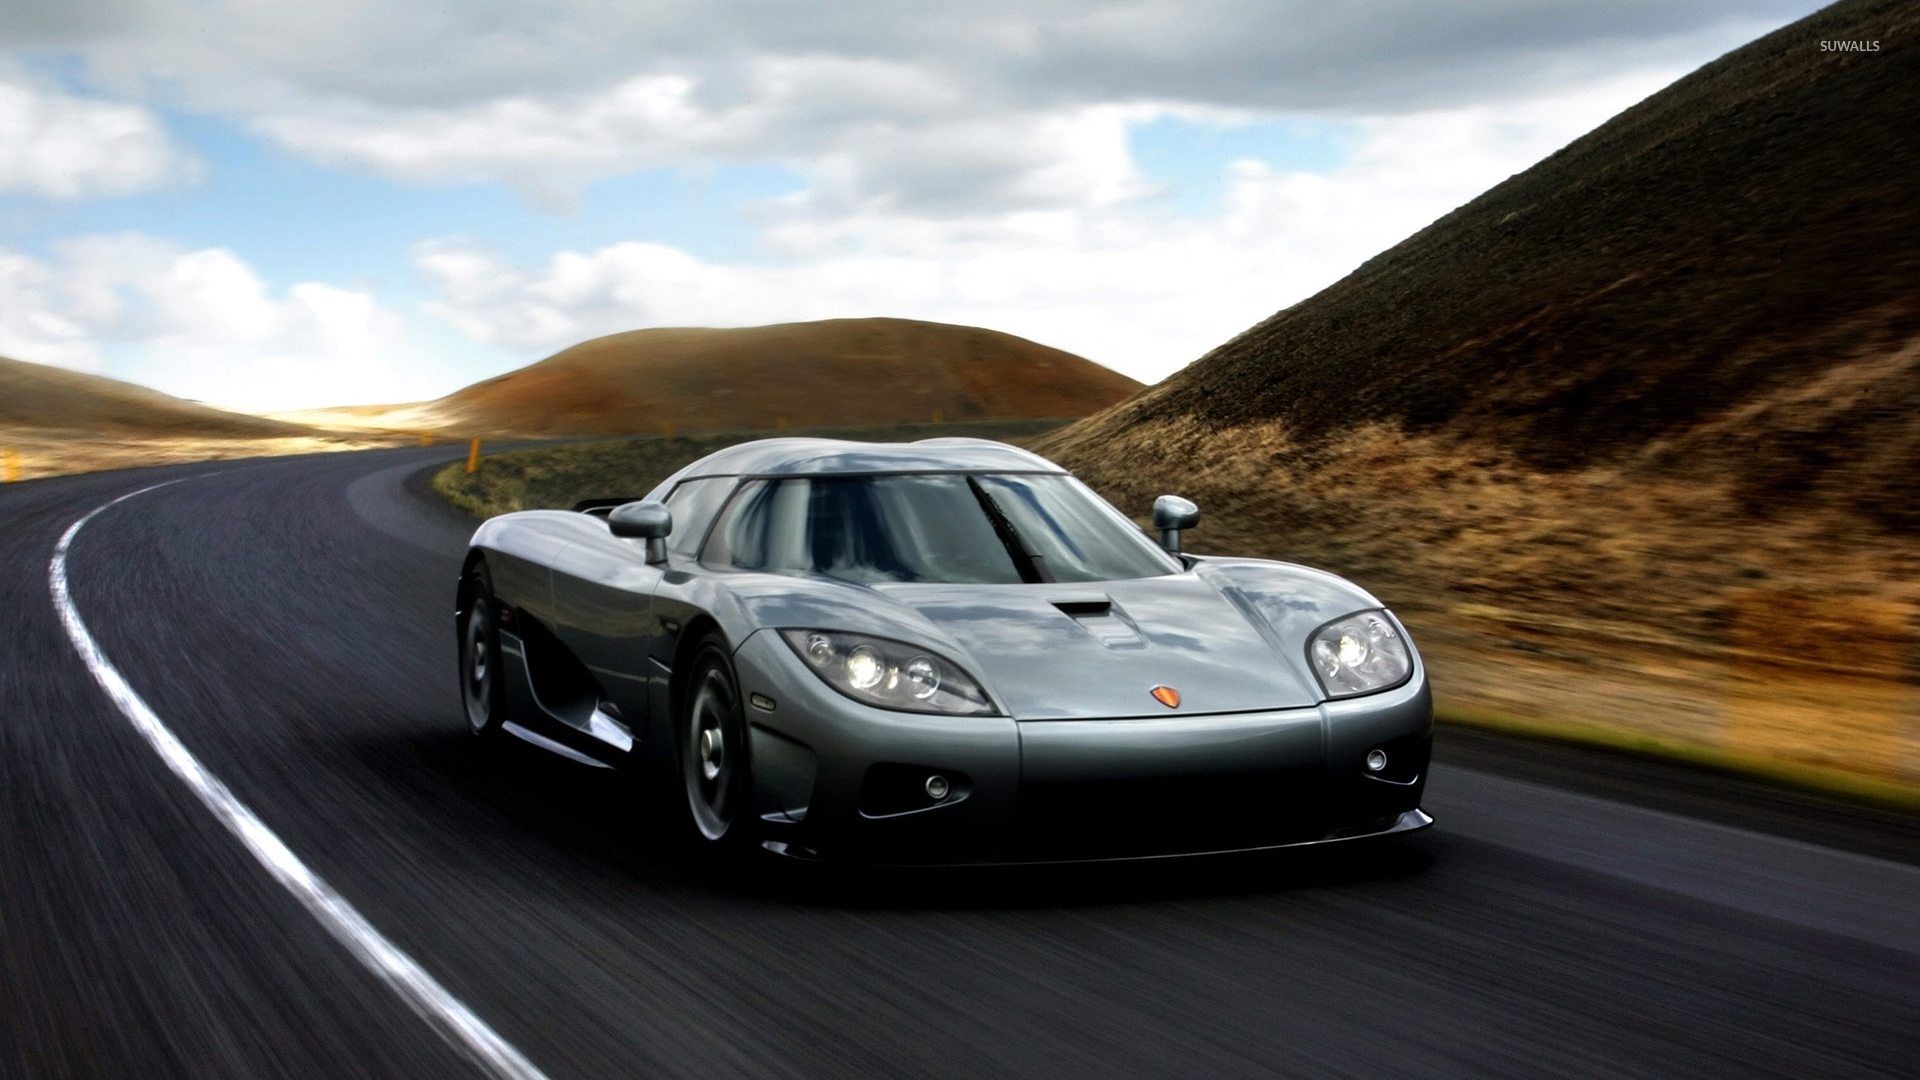 Attrayant Koenigsegg CCX [4] Wallpaper